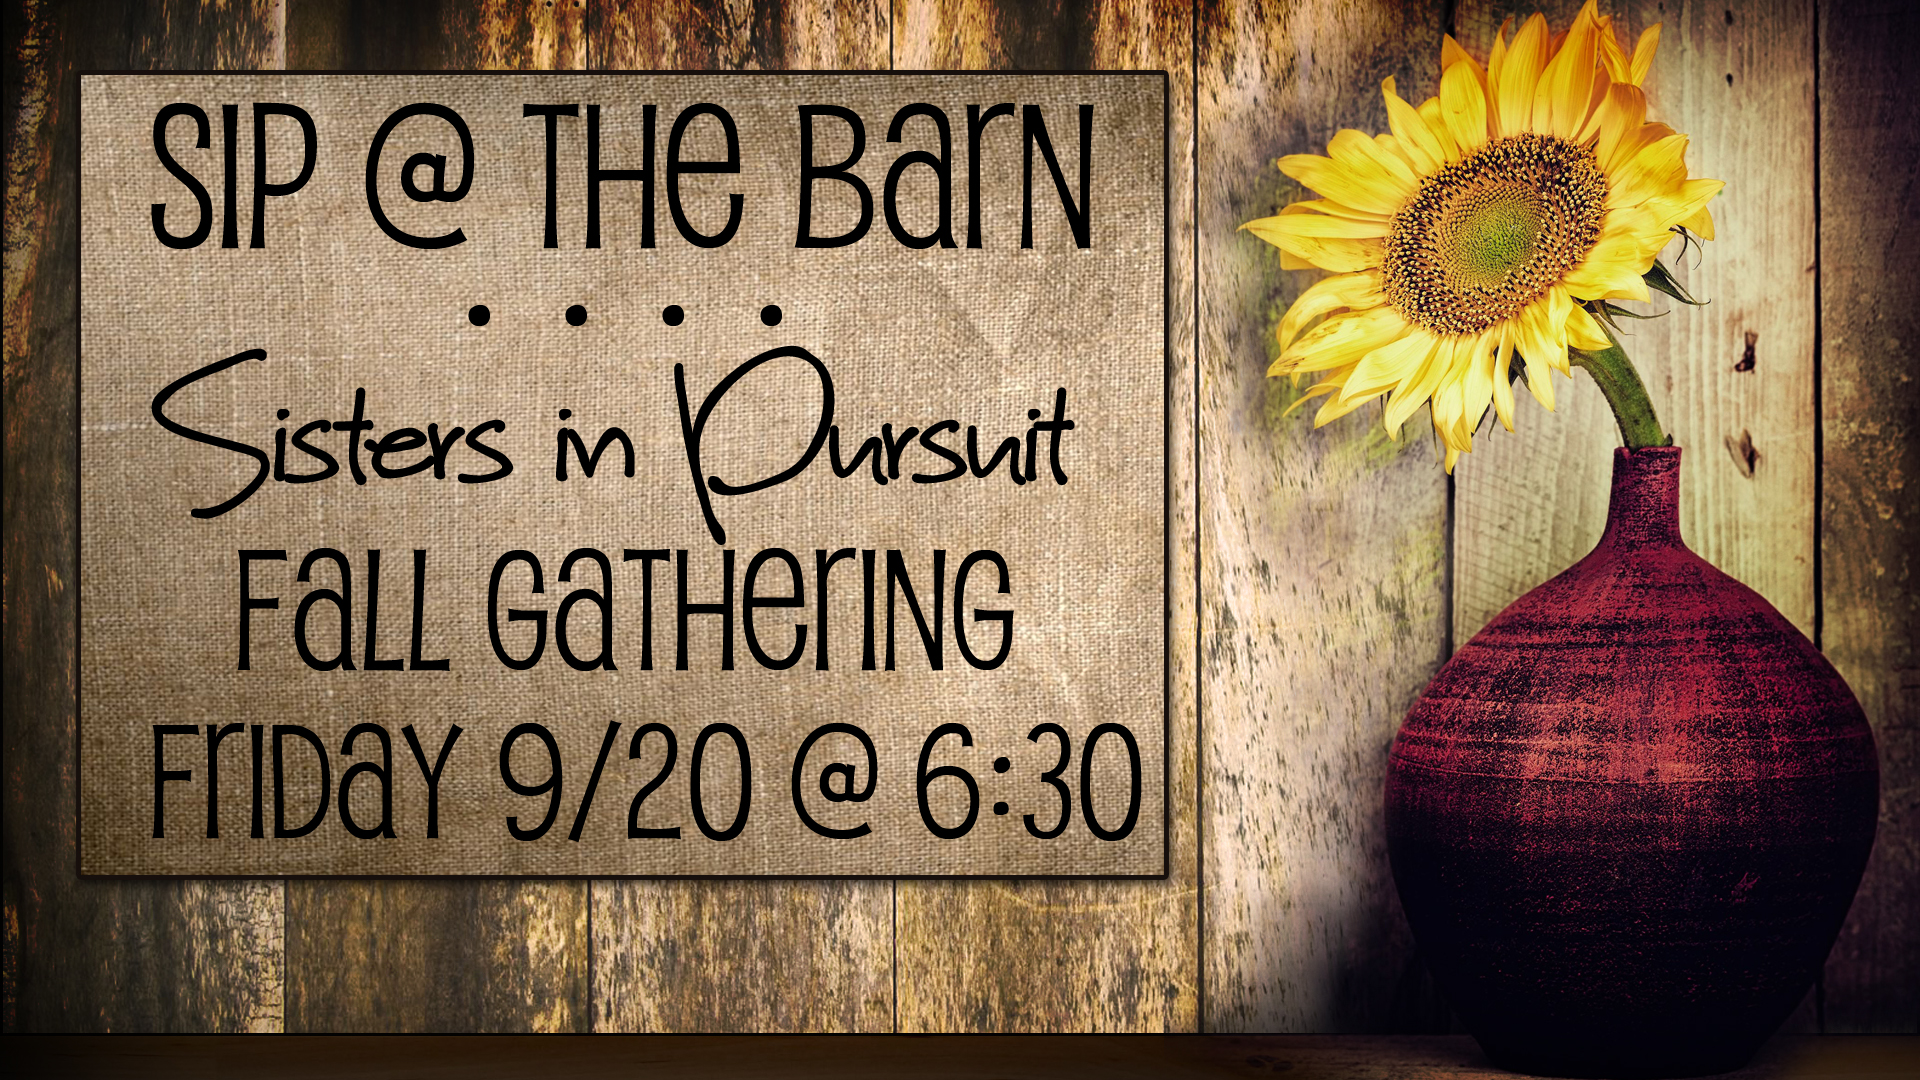 All ladies are invited to this special event! - Food, friendship, worship & the Word of God!Worship: Allison Thomas ~ Special Speaker: Pam BielLocation: Big Oak Meadows (7266 Hayes-Orangeville Rd., Burghill, OH)Cost of $10 includes:Meal with dessert, cider, coffees and a whole evening with your sisters!Deadline to Register: 4pm Monday, Sept. 16Questions? Call Michelle @ 330.240.3945